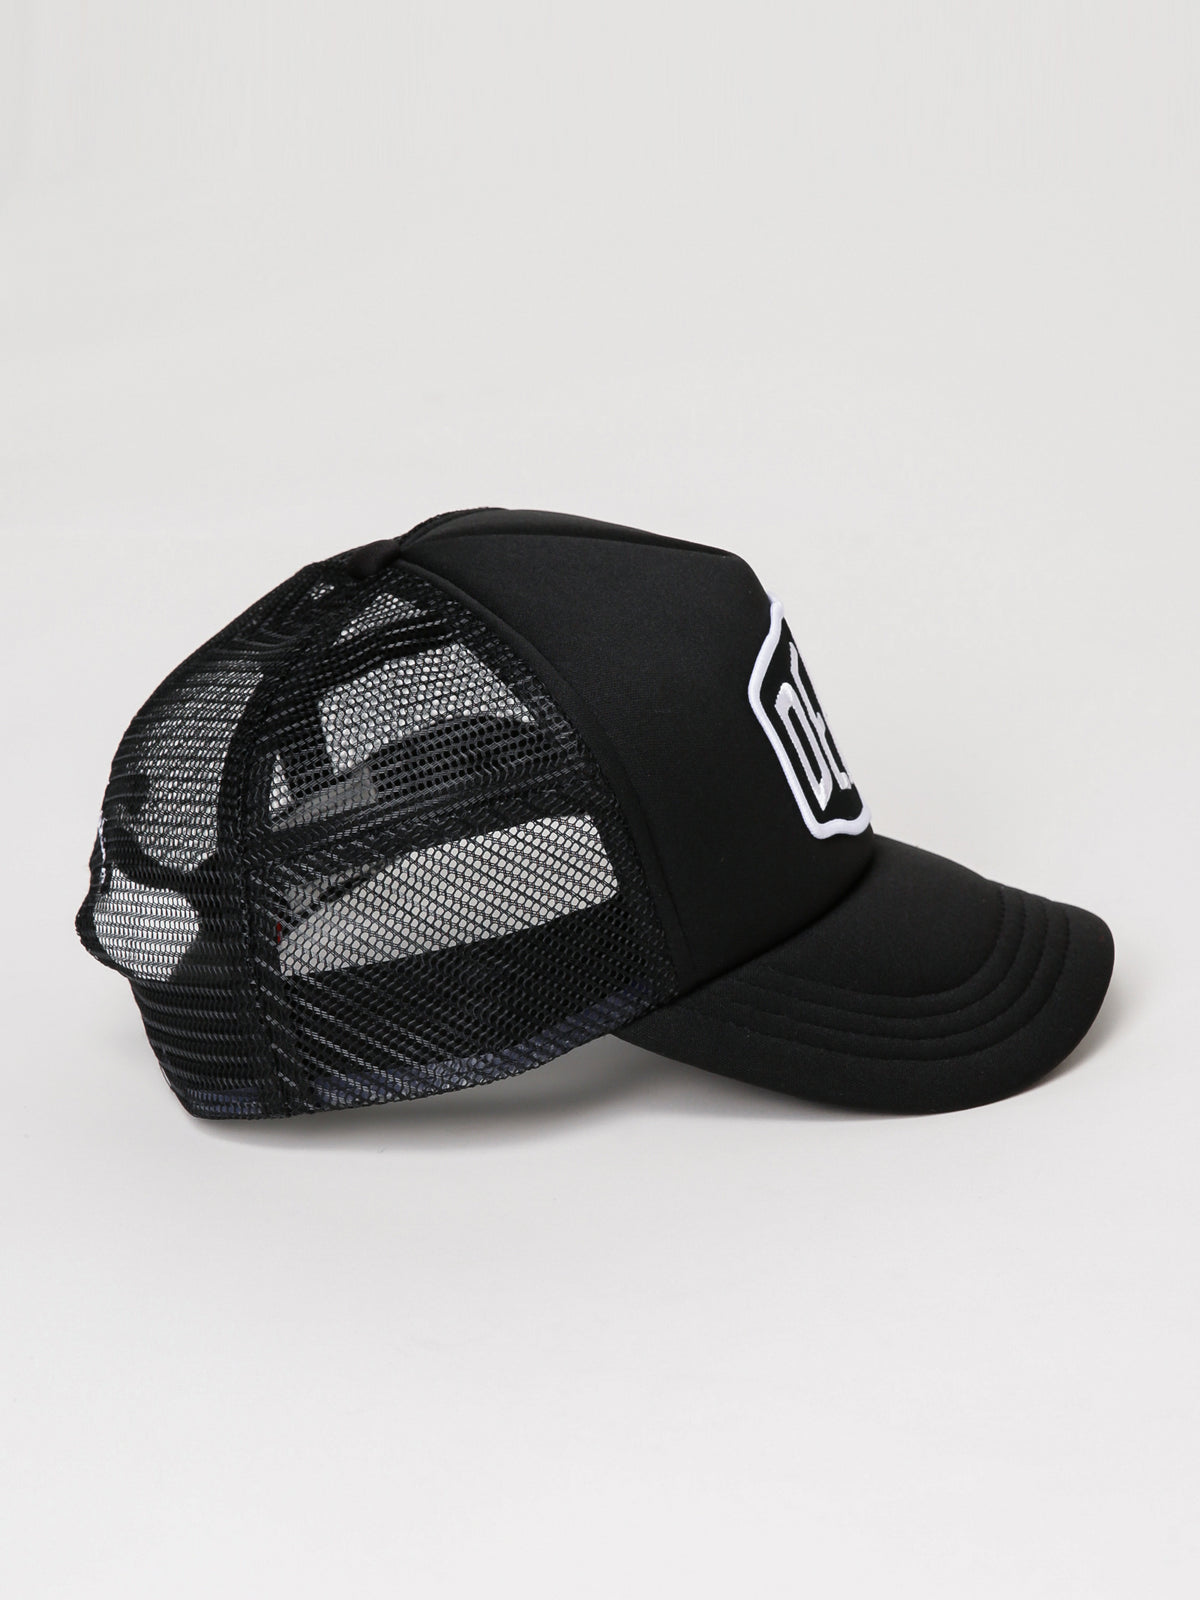 Baylands Trucker Cap in Black